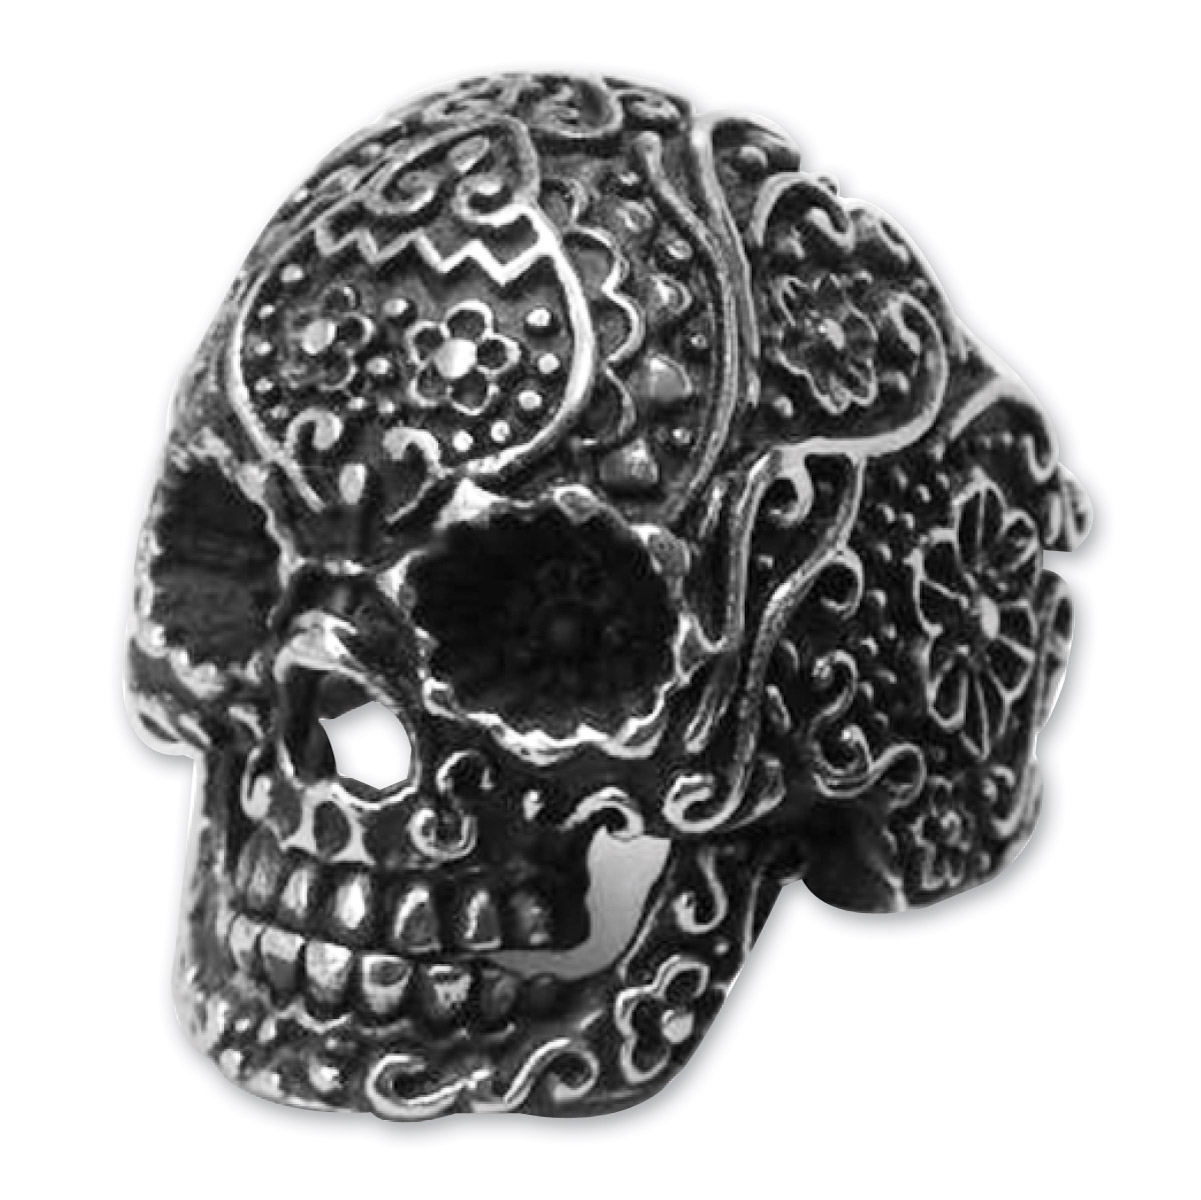 Hair Glove Antique Silver Stainless Silver Illustrated Sugar Skull Ring